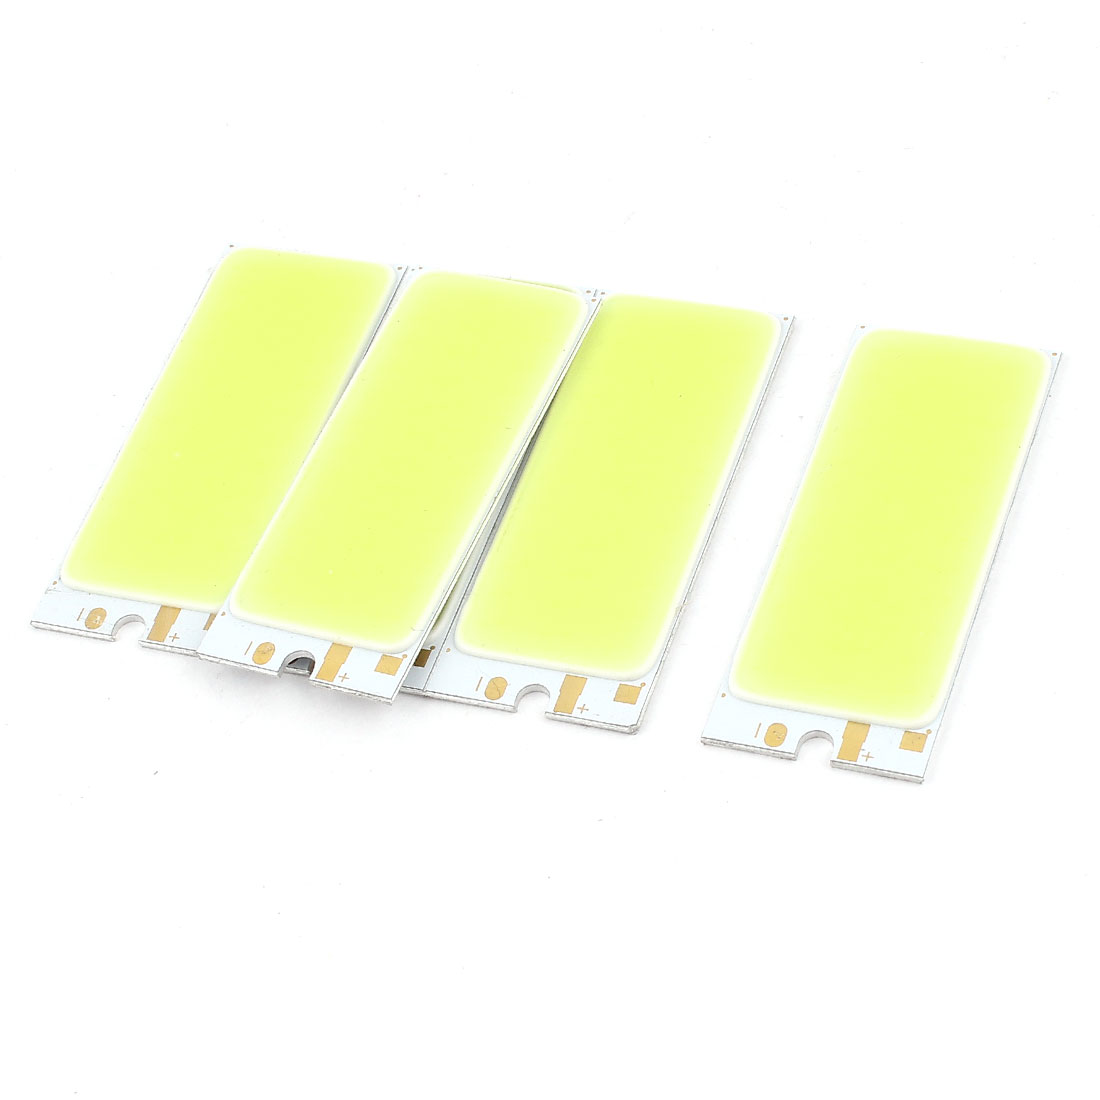 3W DC9-11V 300mA 80-90LM/W White LED Light COB Lamp Bead Chip 5 Pcs